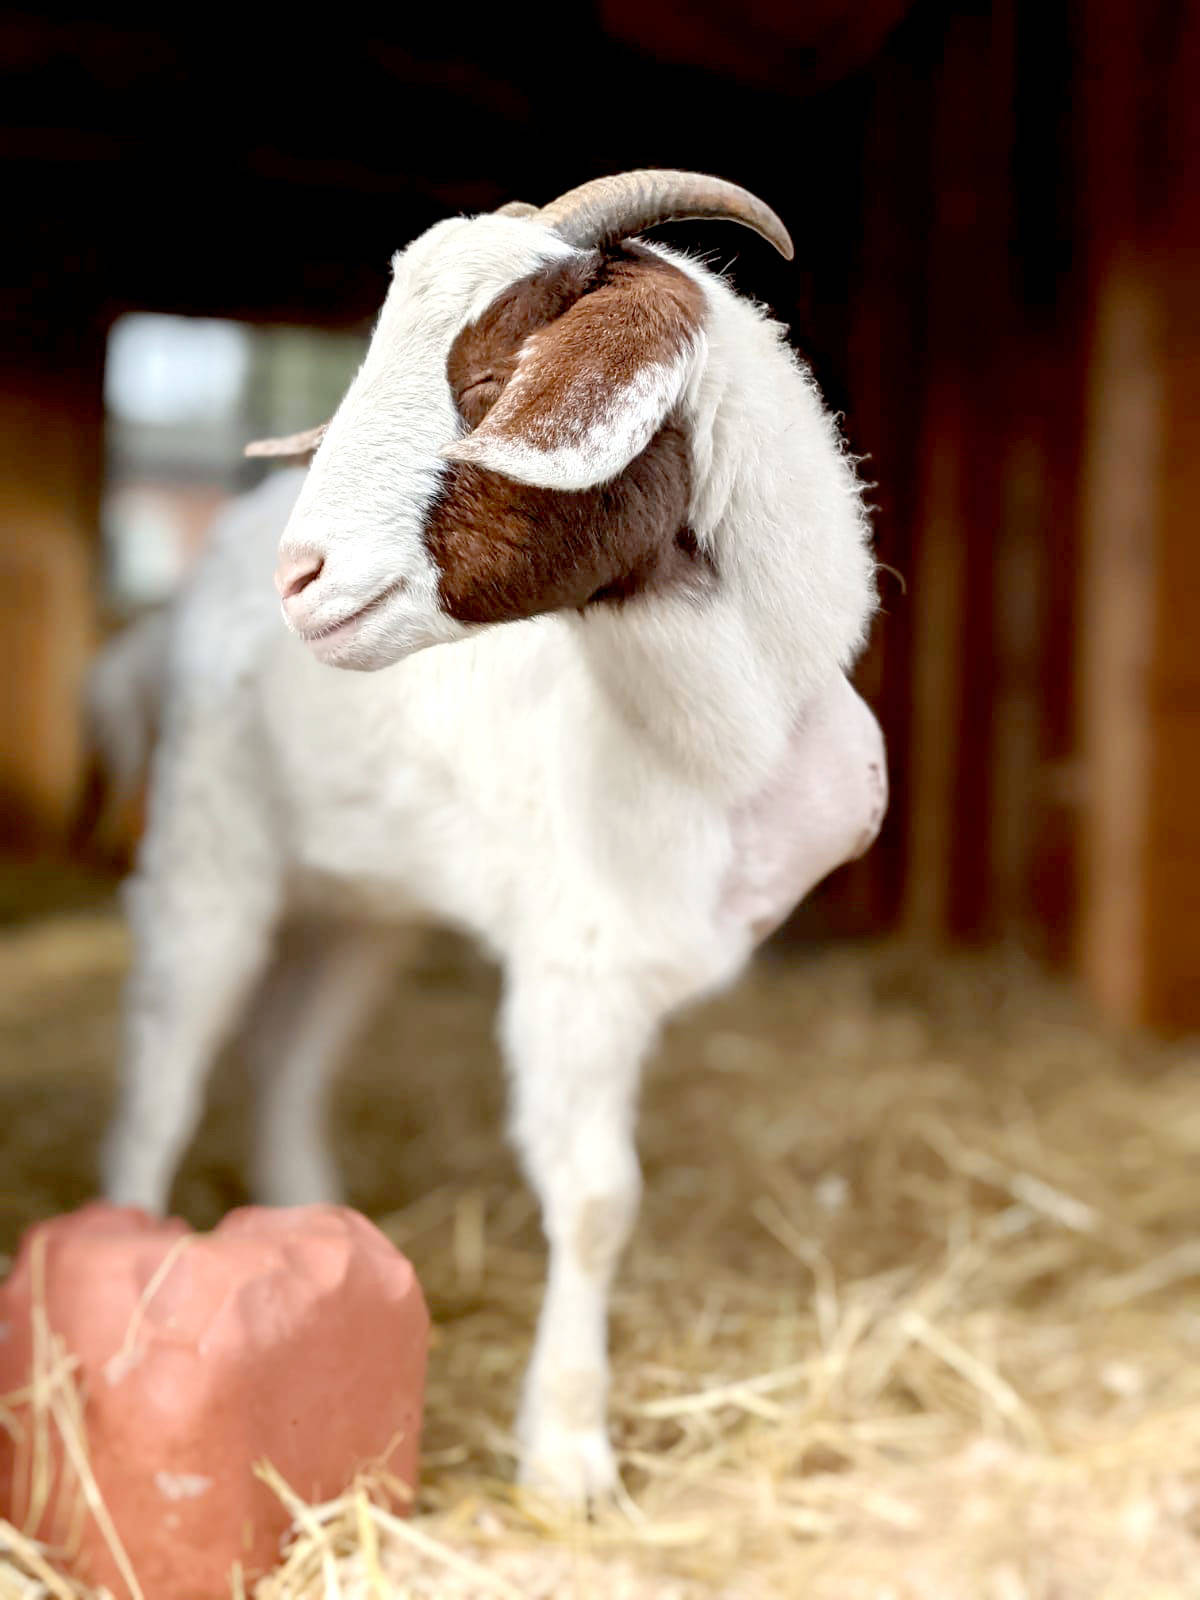 Gibbles the goat, a resident at the Happy Herd Animal Sanctuary in Aldergrove, is living life after having one leg amputated. (Special to The Star)